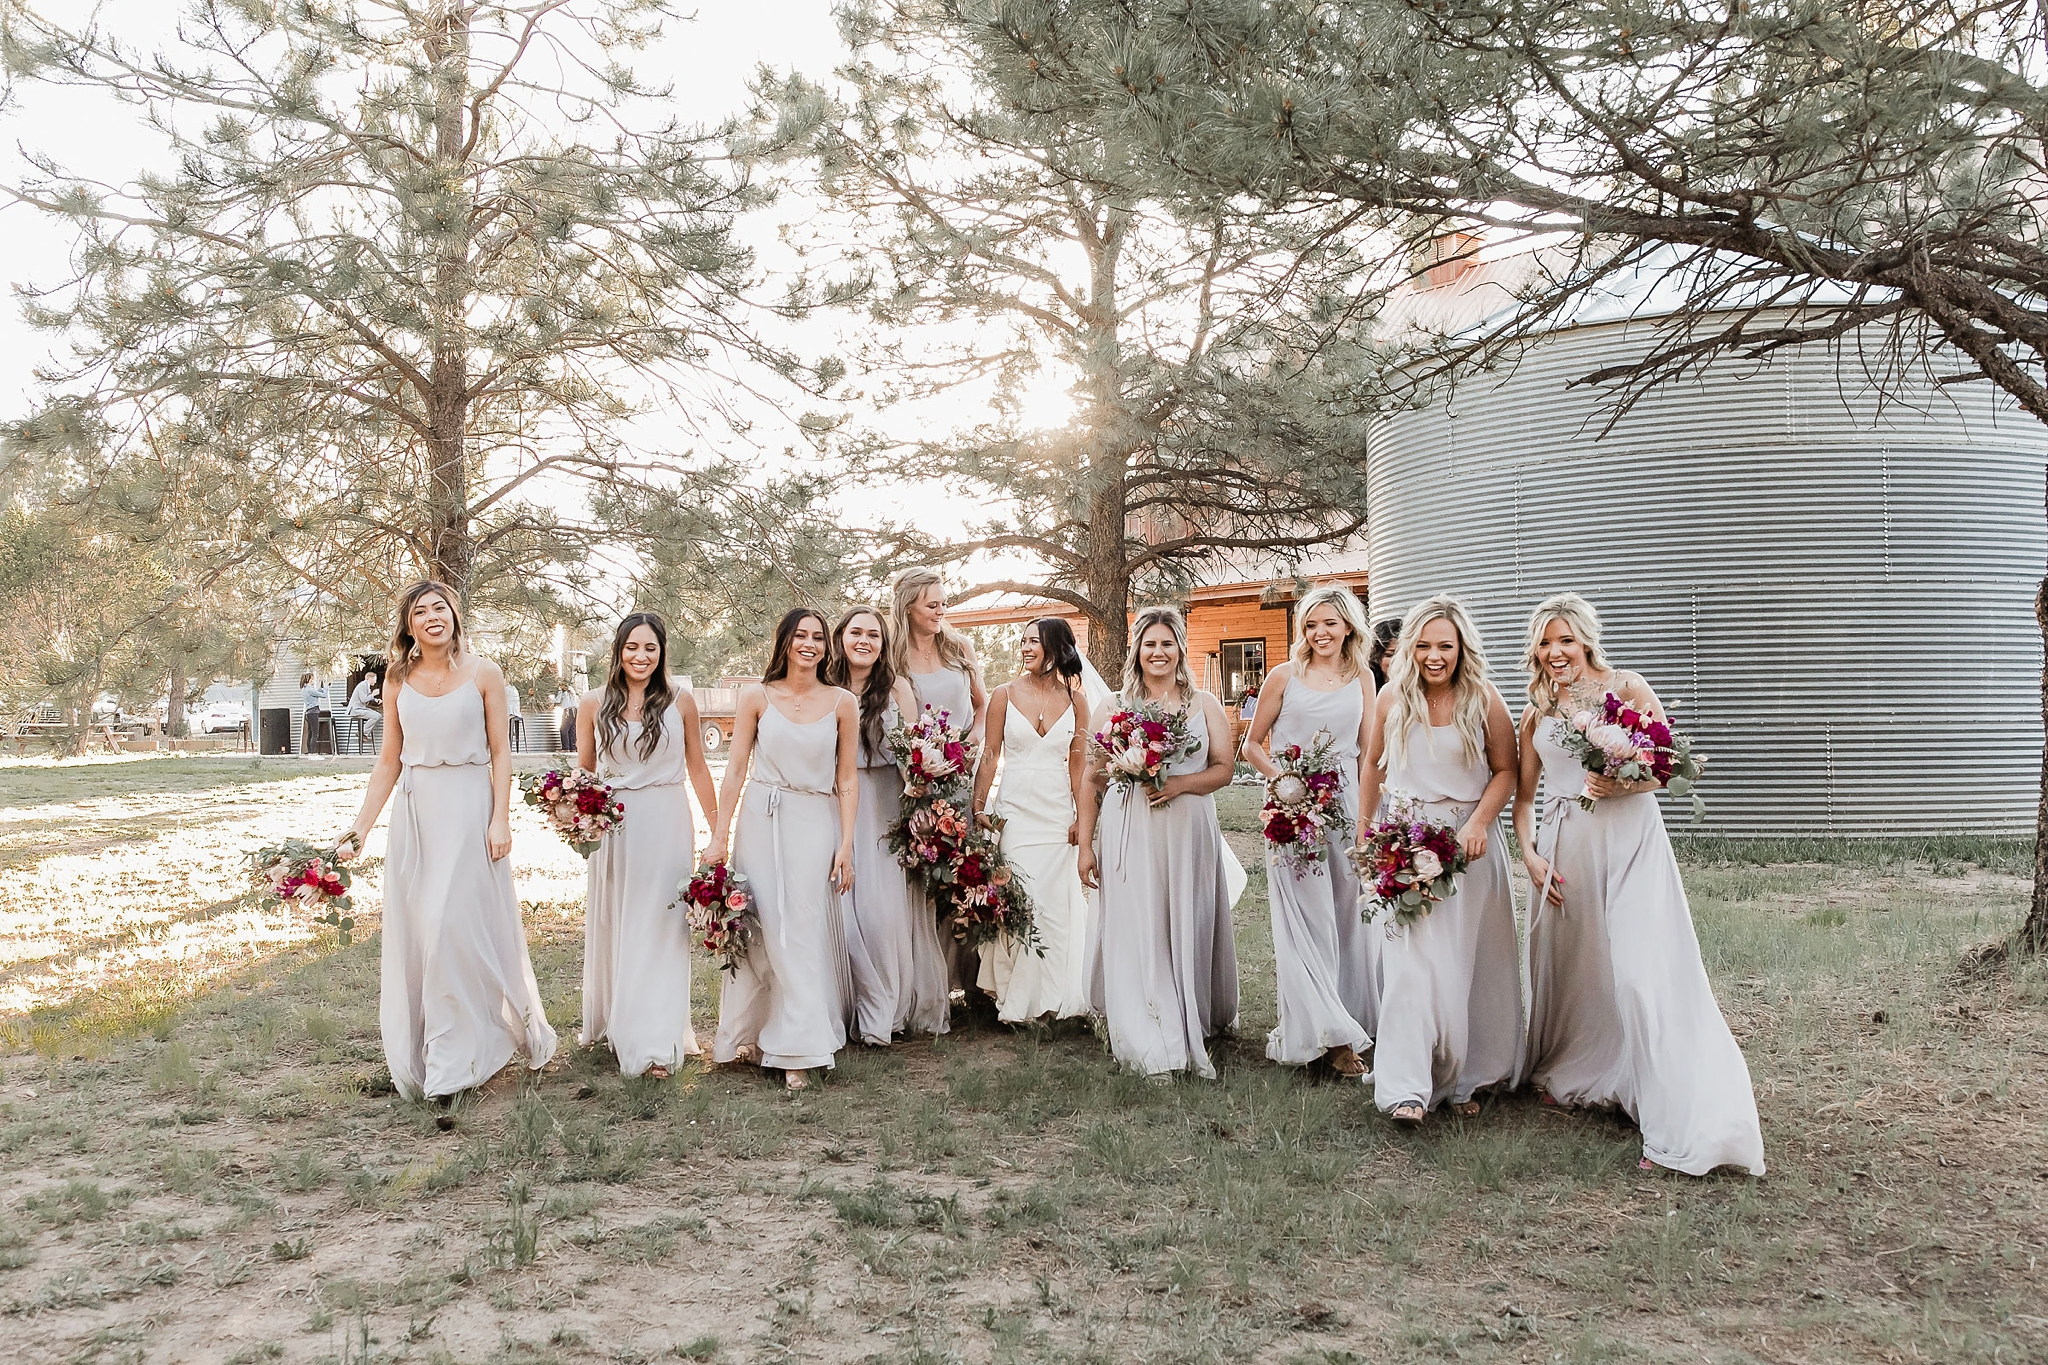 Alicia+lucia+photography+-+albuquerque+wedding+photographer+-+santa+fe+wedding+photography+-+new+mexico+wedding+photographer+-+new+mexico+wedding+-+new+mexico+wedding+-+colorado+wedding+-+bridesmaids+-+bridesmaid+style_0005.jpg